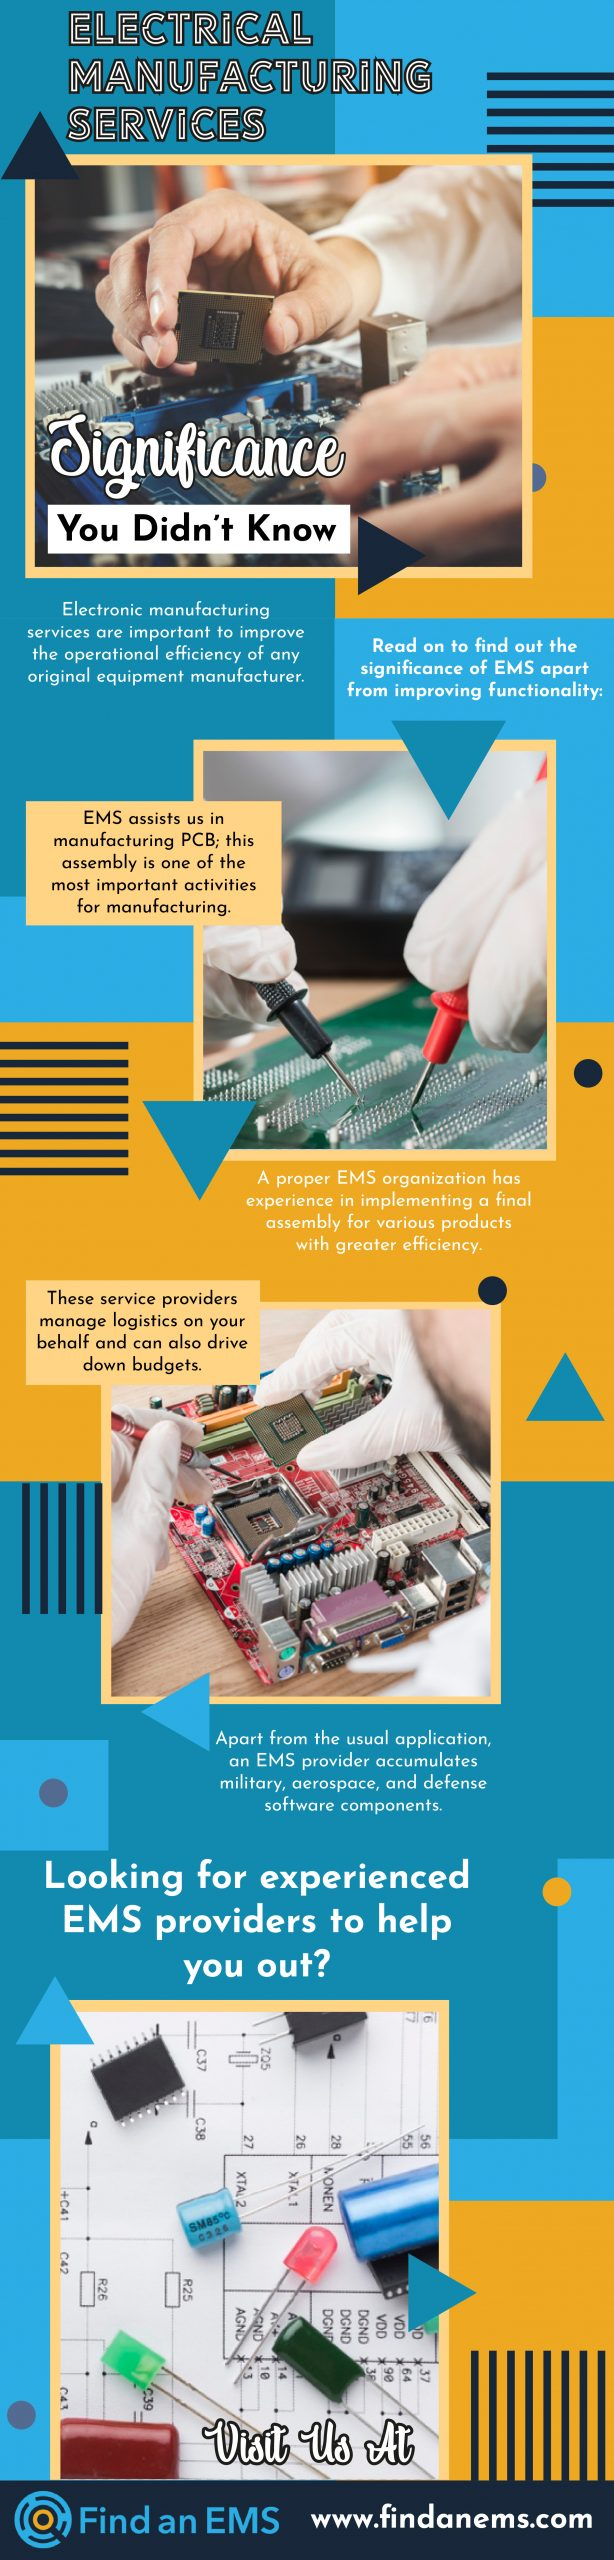 Electrical Manufacturing Services: Significance You Didn't Know